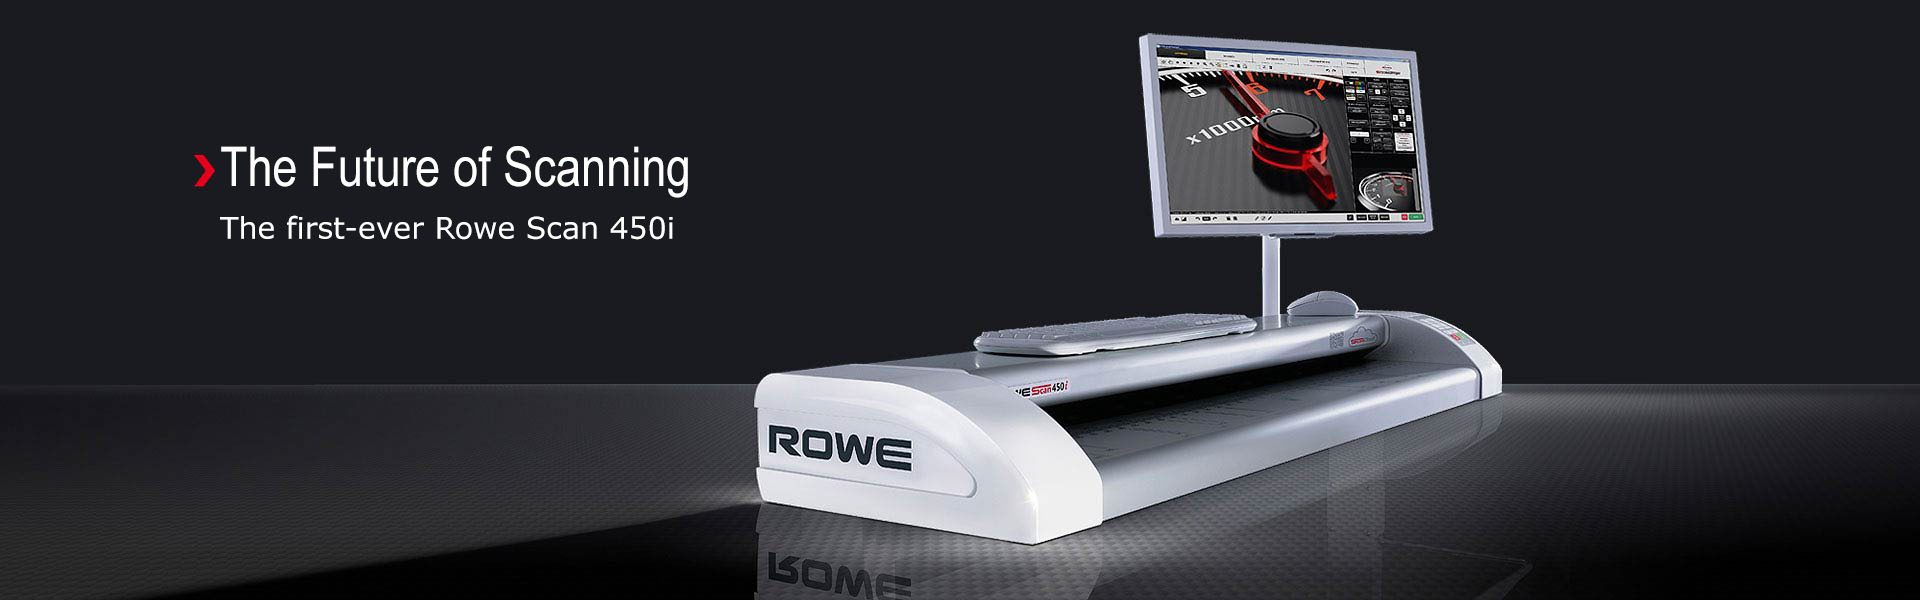 1 rowe scan450i 1920px